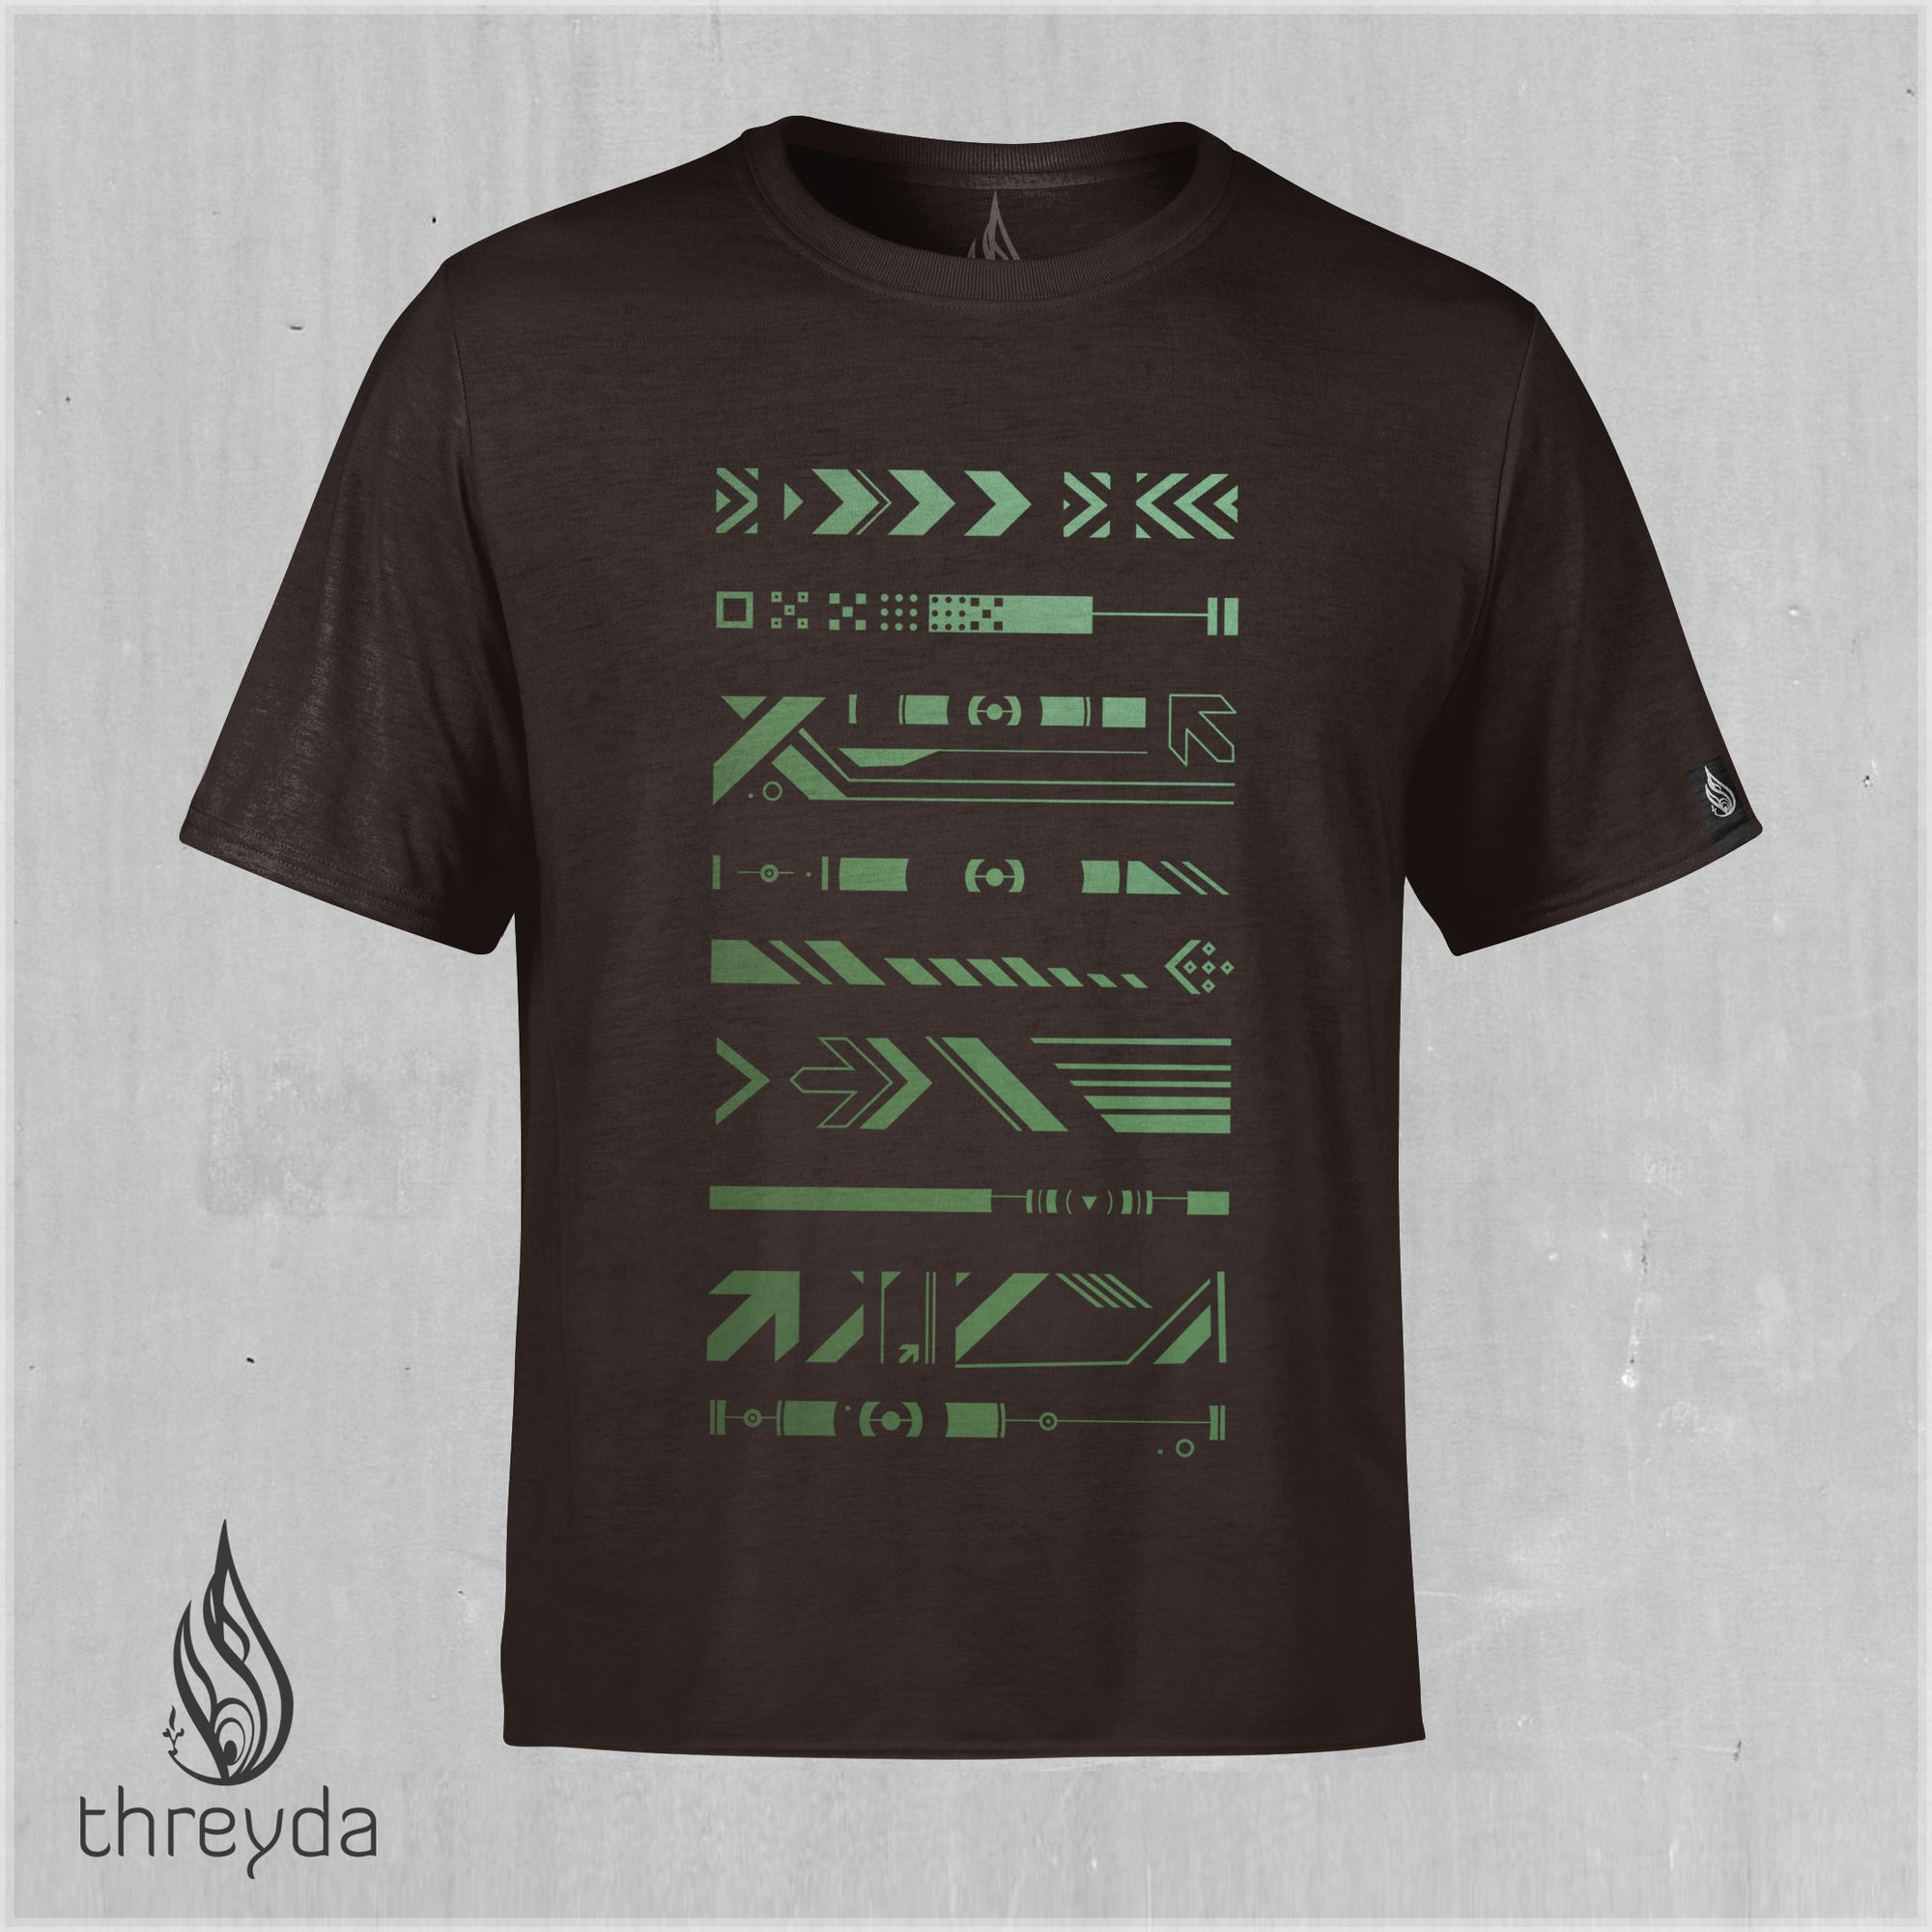 Data Hieroglyph Color Shifting Cotton Tee by Threyda - Ships April 2020